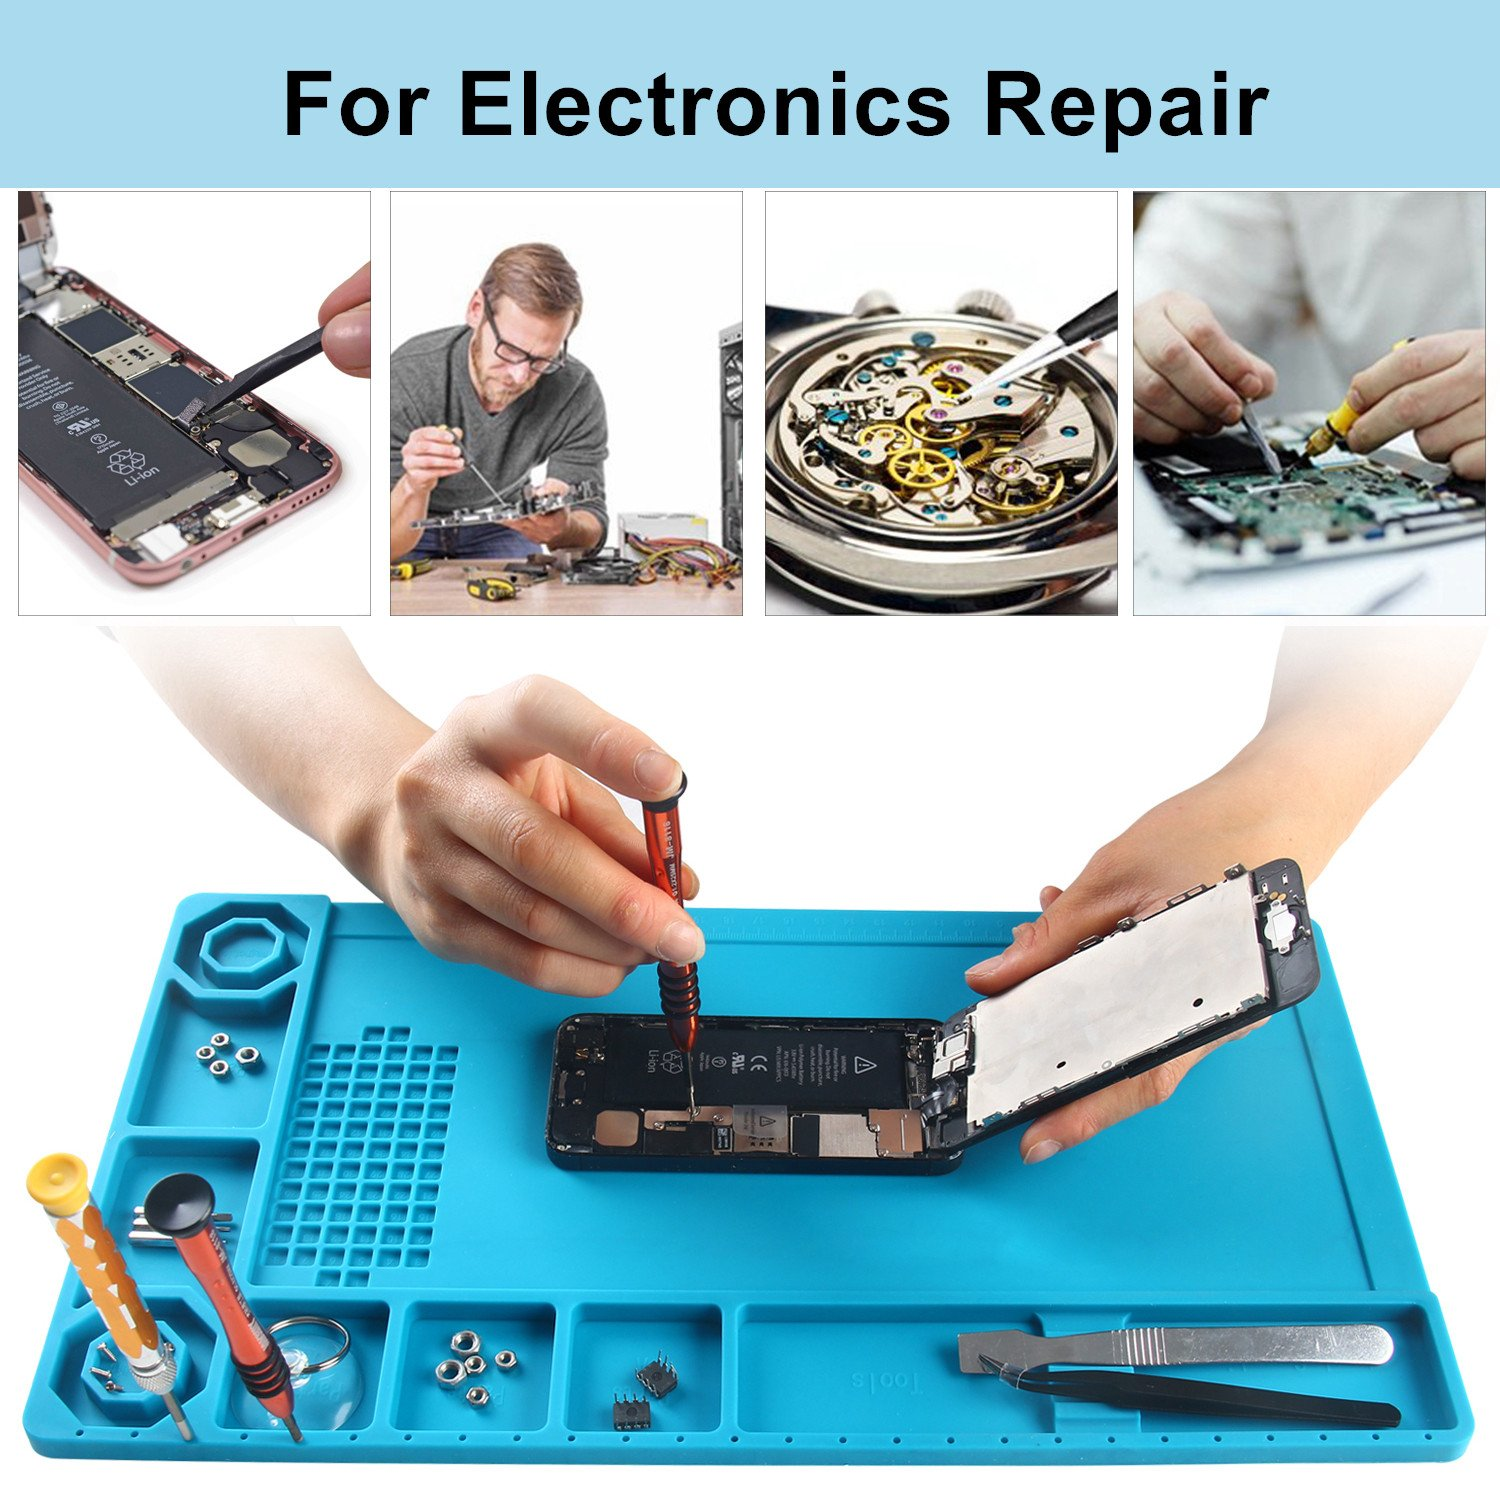 SEASWAL Silicone Solder Mat, Magnetic Heat Insulation Work Mat, with Tools Parts Organizer Electronics Repair Mat for Soldering Iron, Heat Gun, Phone and Computer Repair 15''x8.3'' Blue by SEASWAL (Image #3)